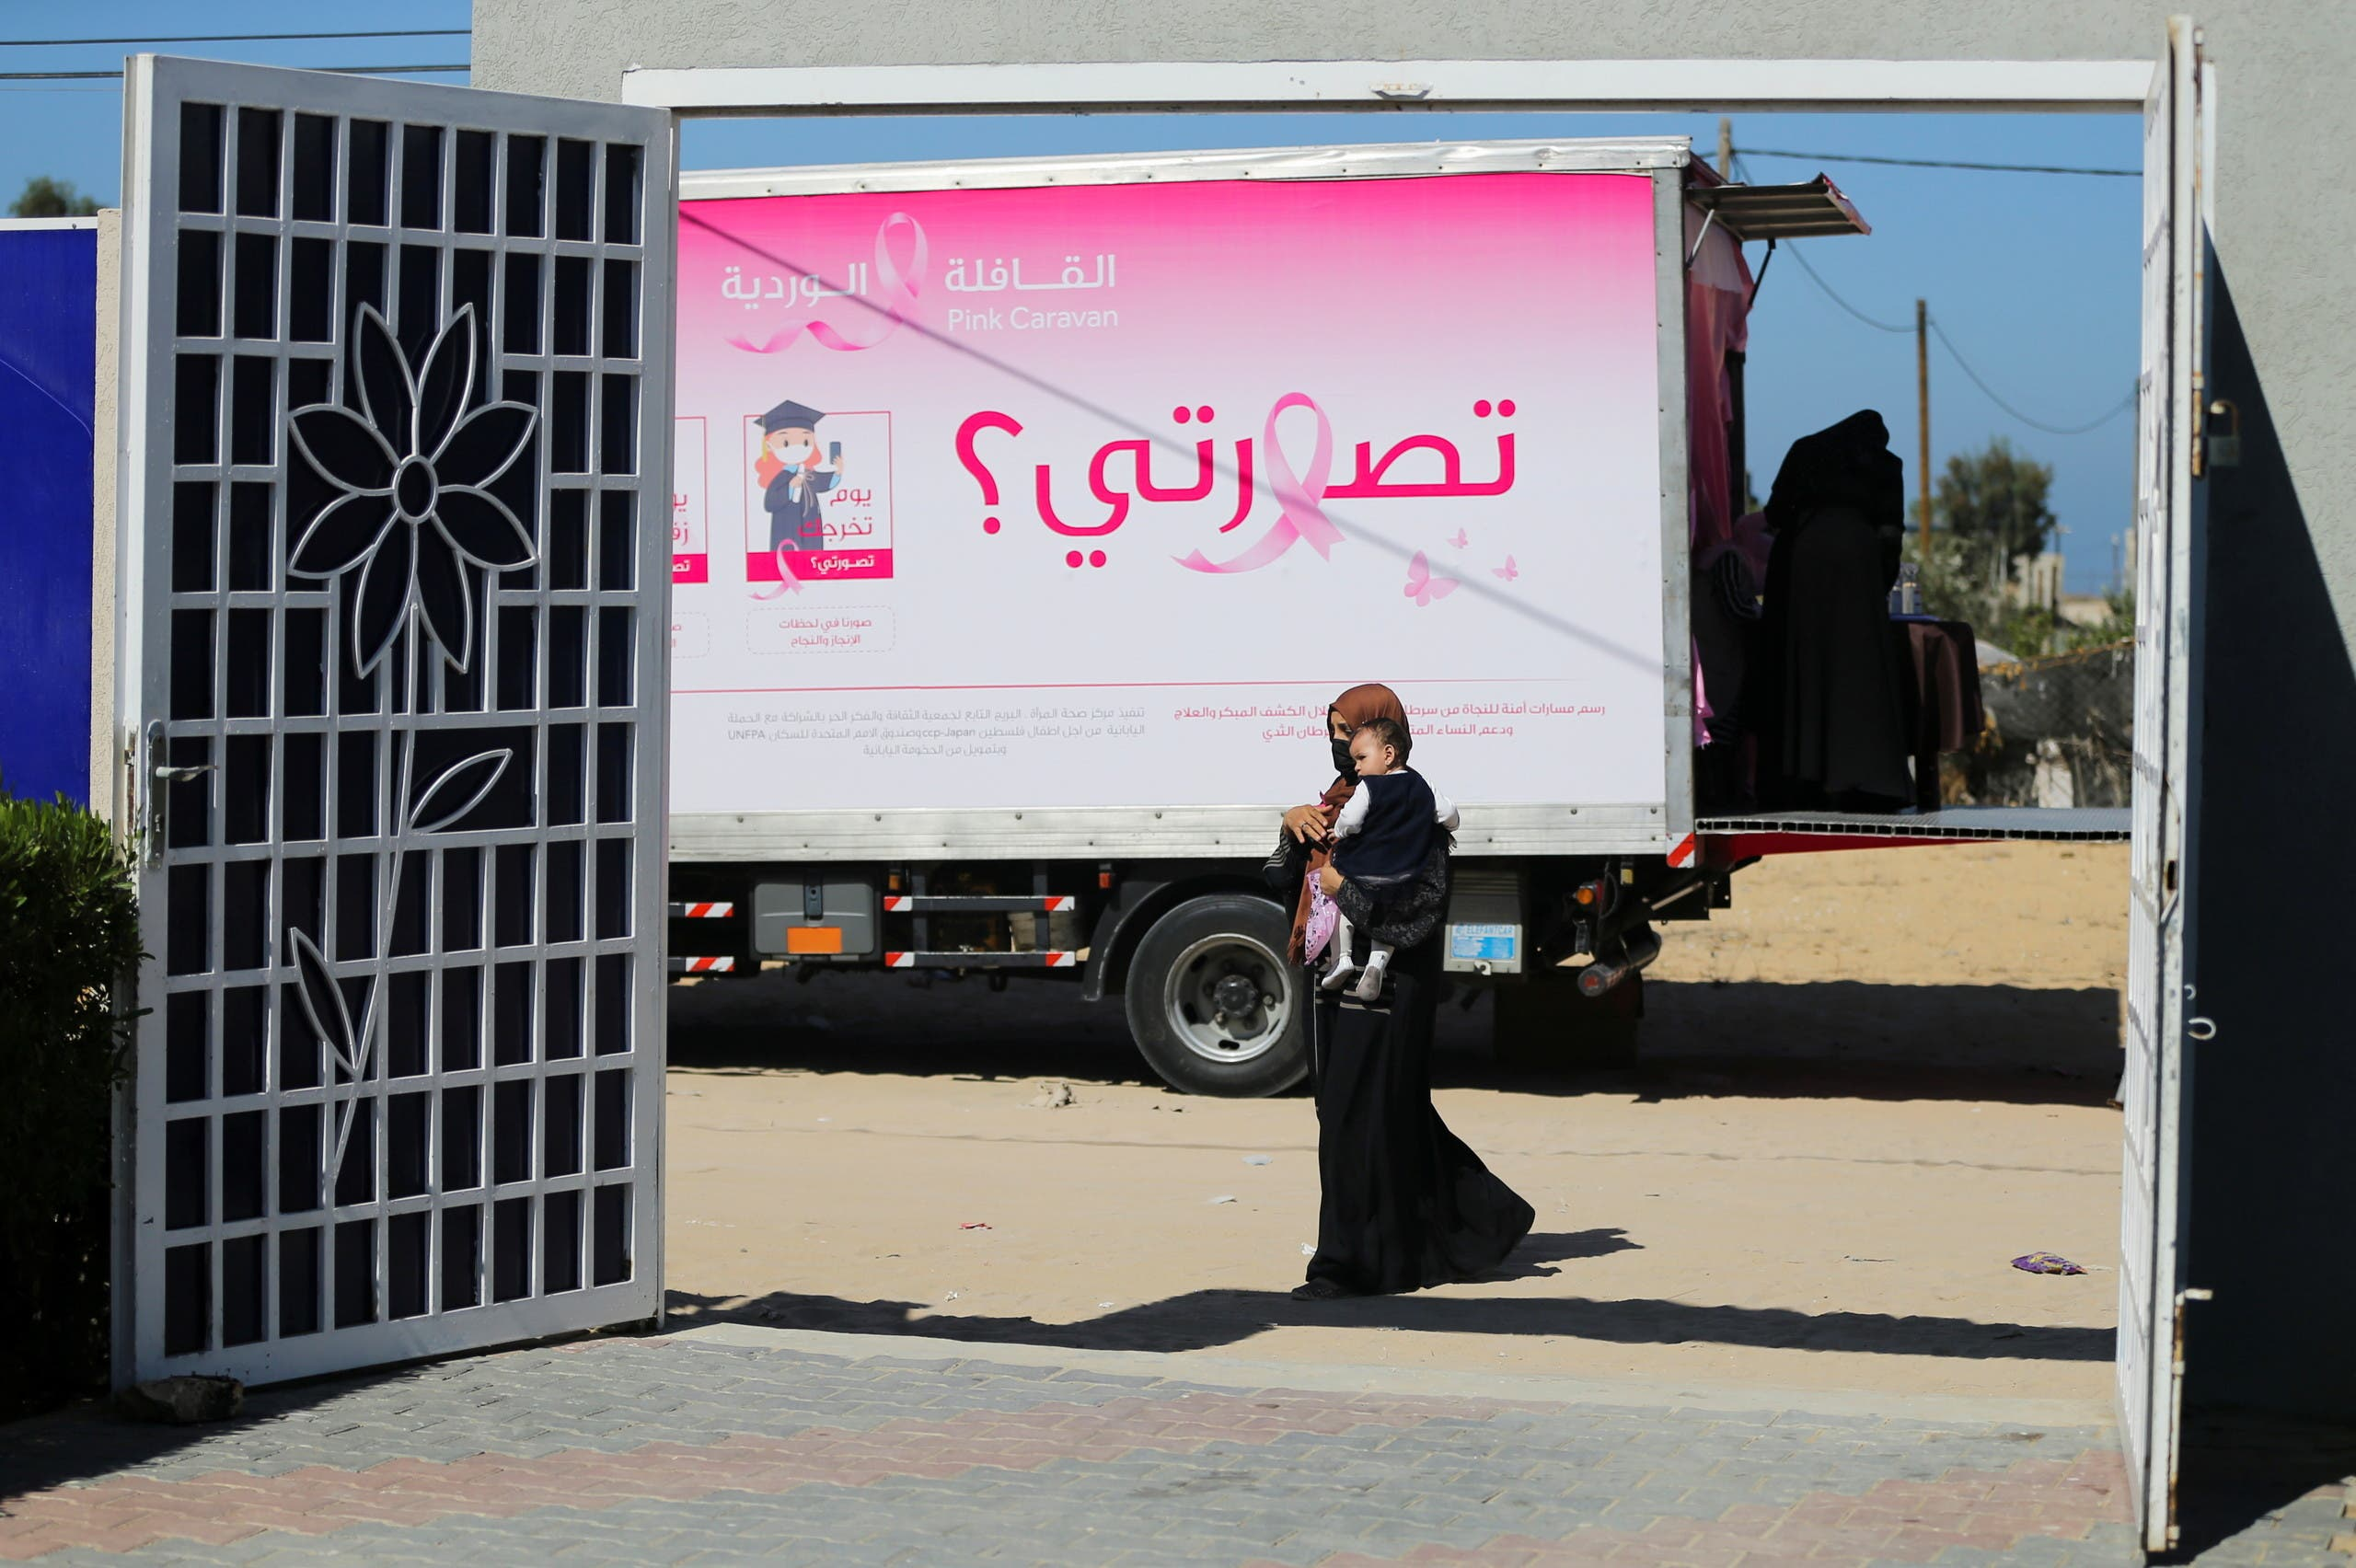 A Palestinian woman leaves a mobile clinic set up in a truck after a breast cancer check up, during a campaign aimed to raise public awareness in Gaza over the need for early tests to discover breast cancer, in Khan Yunis, in the southern Gaza Strip, October 7, 2021. (Reuters)